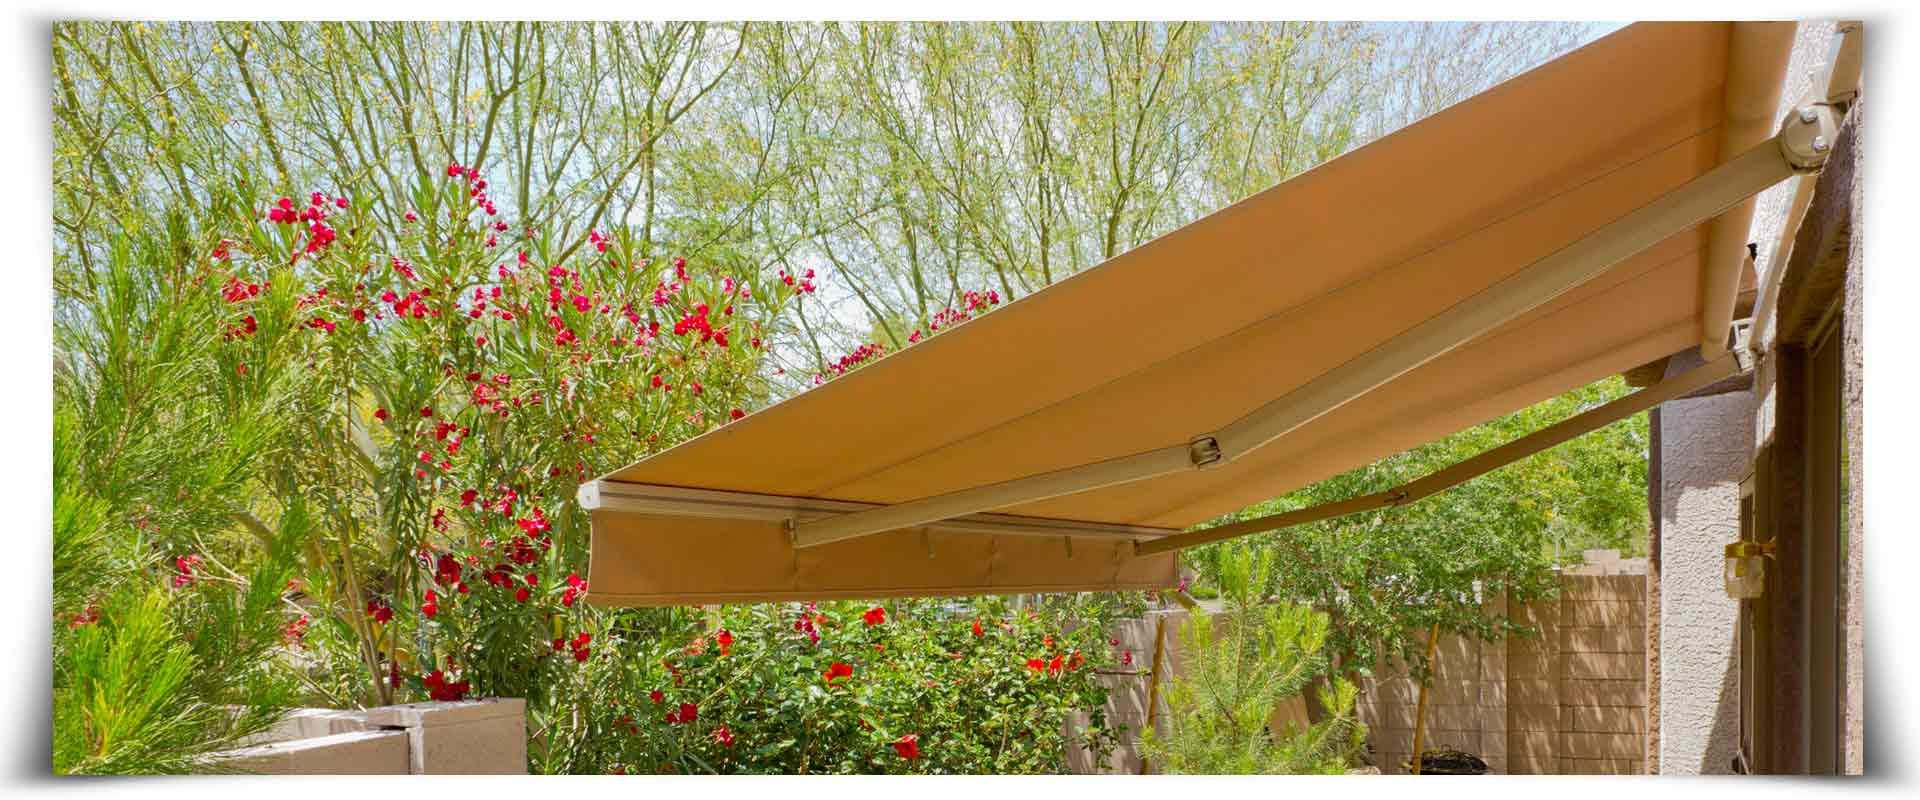 garry neven blinds awnings near garden